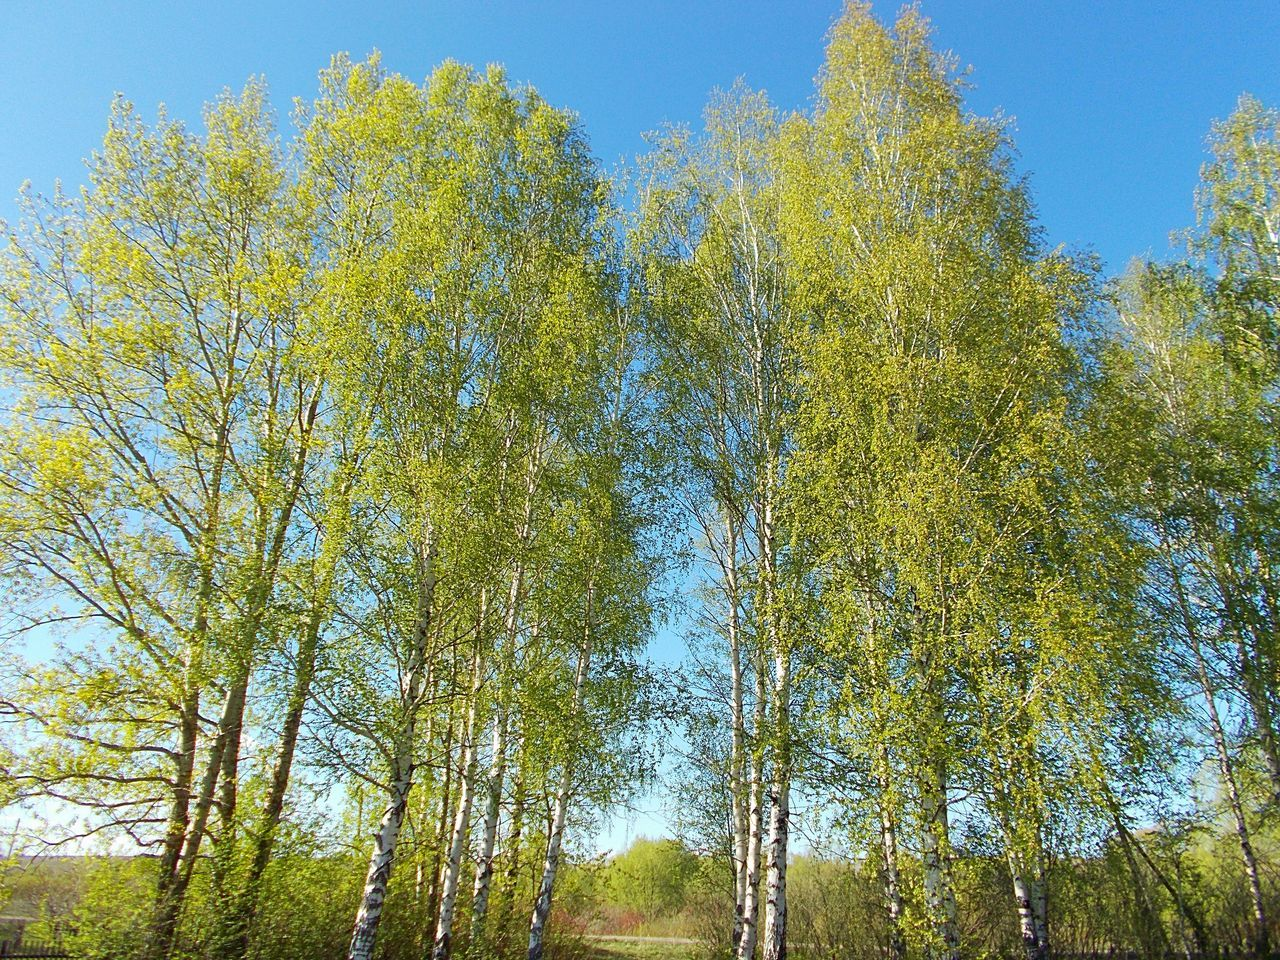 tree, growth, low angle view, nature, day, sky, outdoors, tranquility, no people, beauty in nature, forest, blue, clear sky